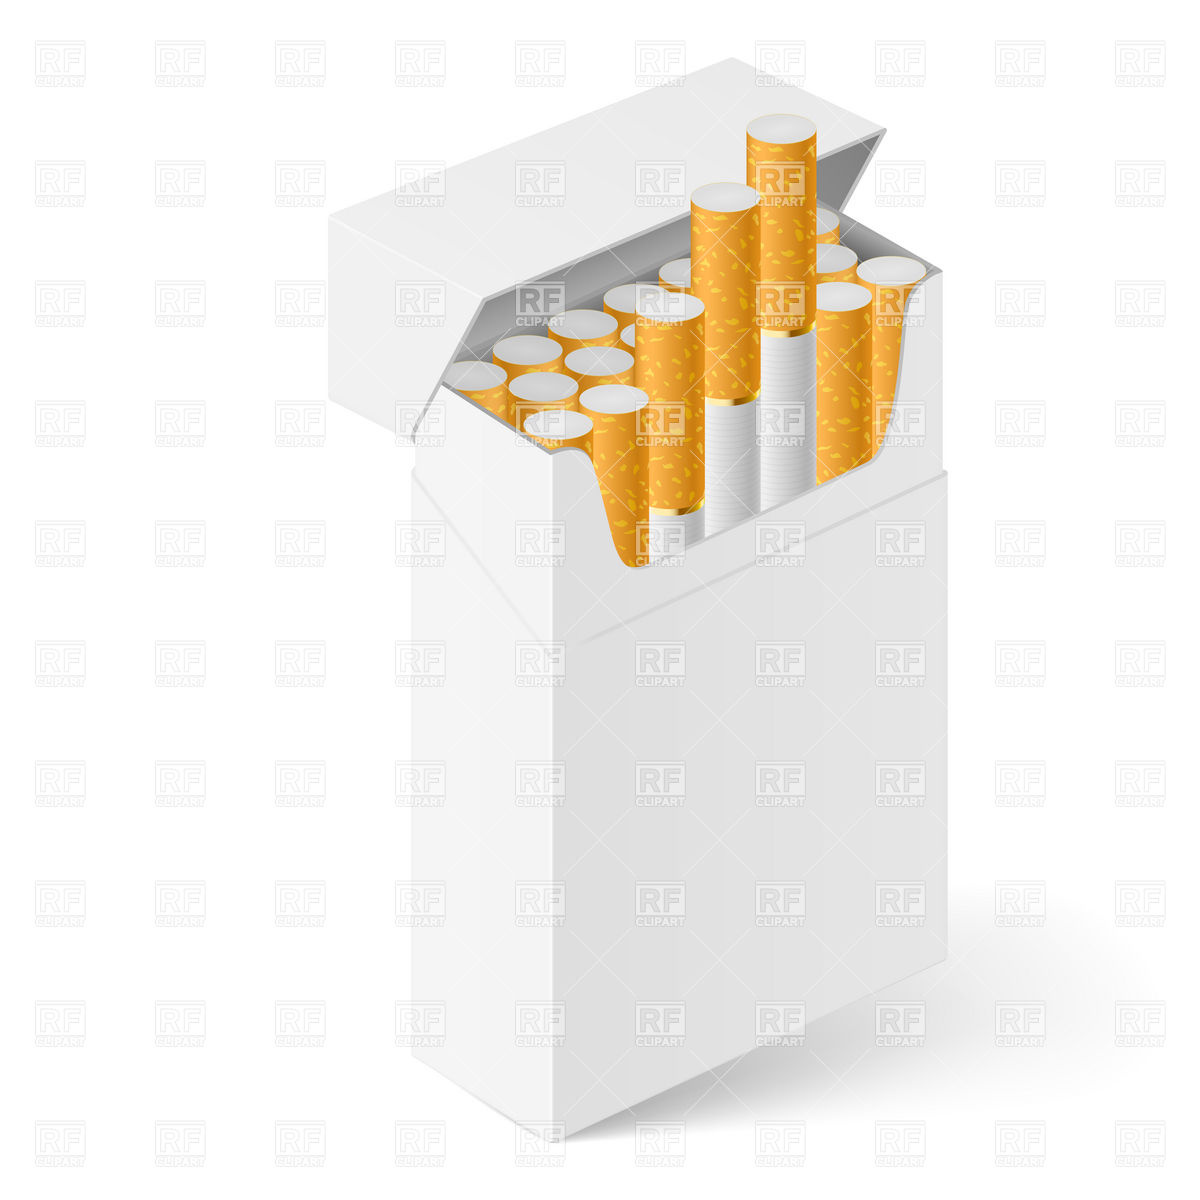 Top of cigarette box opened clipart.